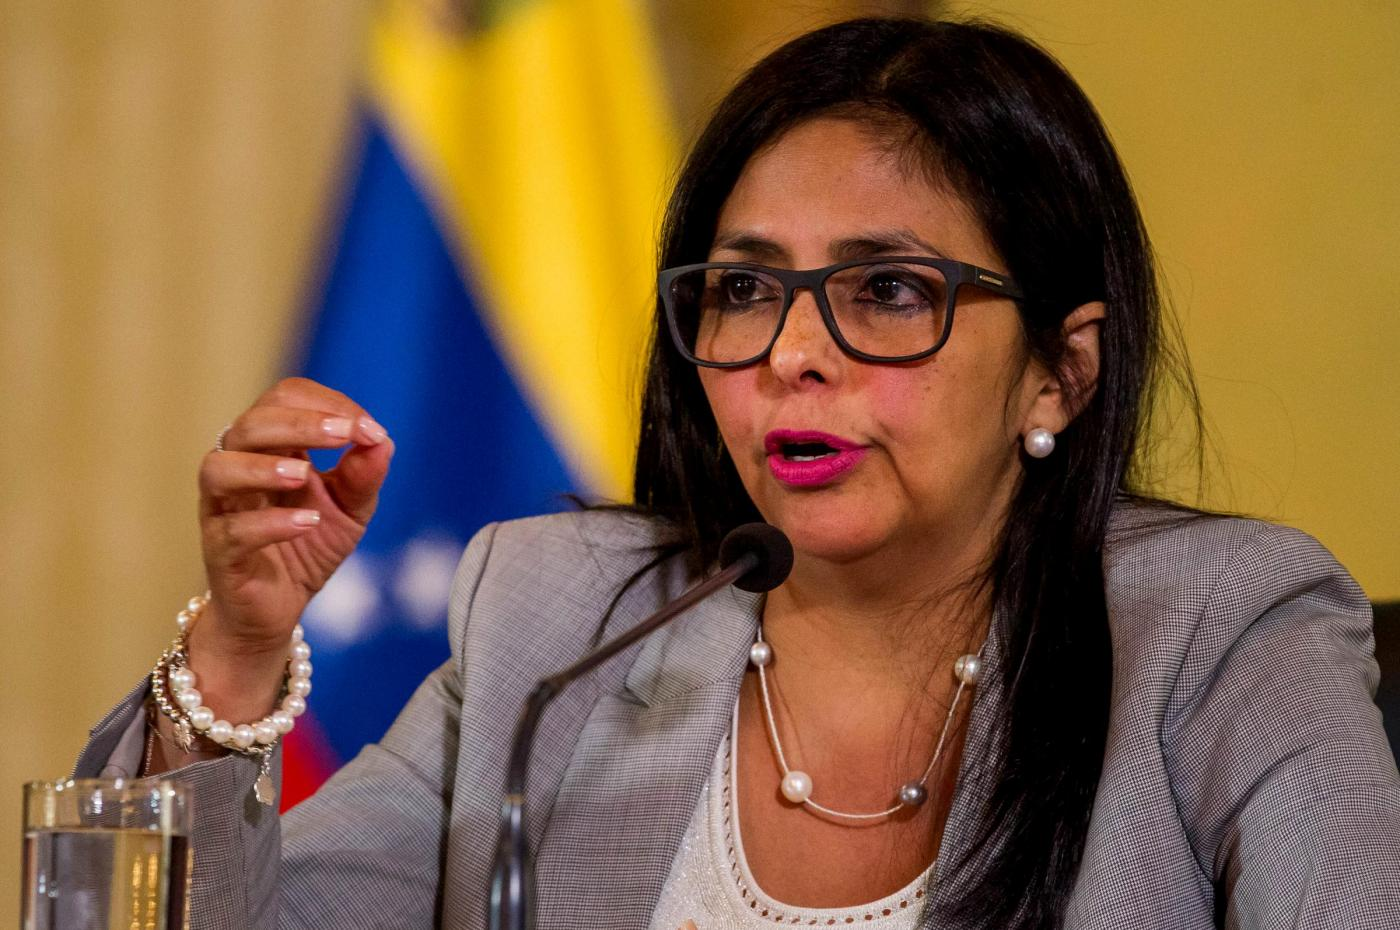 "(170216) -- CARACAS, Feb. 16, 2017 (Xinhua) -- Venezuela's Foreign Affairs Minister Delcy Rodriguez speaks during a press conference in Caracas, capital of Venezuela, on Feb. 15, 2017. CNN's Spanish-language TV network was forced off the air Wednesday by the government of Venezuela after being accused of waging a negative ""media campaign"" against the country. The National Telecommunications Commission (Conatel) ordered the ""immediate suspension"" of CNN broadcasts nationwide, following Foreign Affairs Minister Delcy Rodriguez' warning that the network was making ""serious"" unfounded allegations. (Xinhua/Boris Vergara)(fnc)(ce)(zhf)"